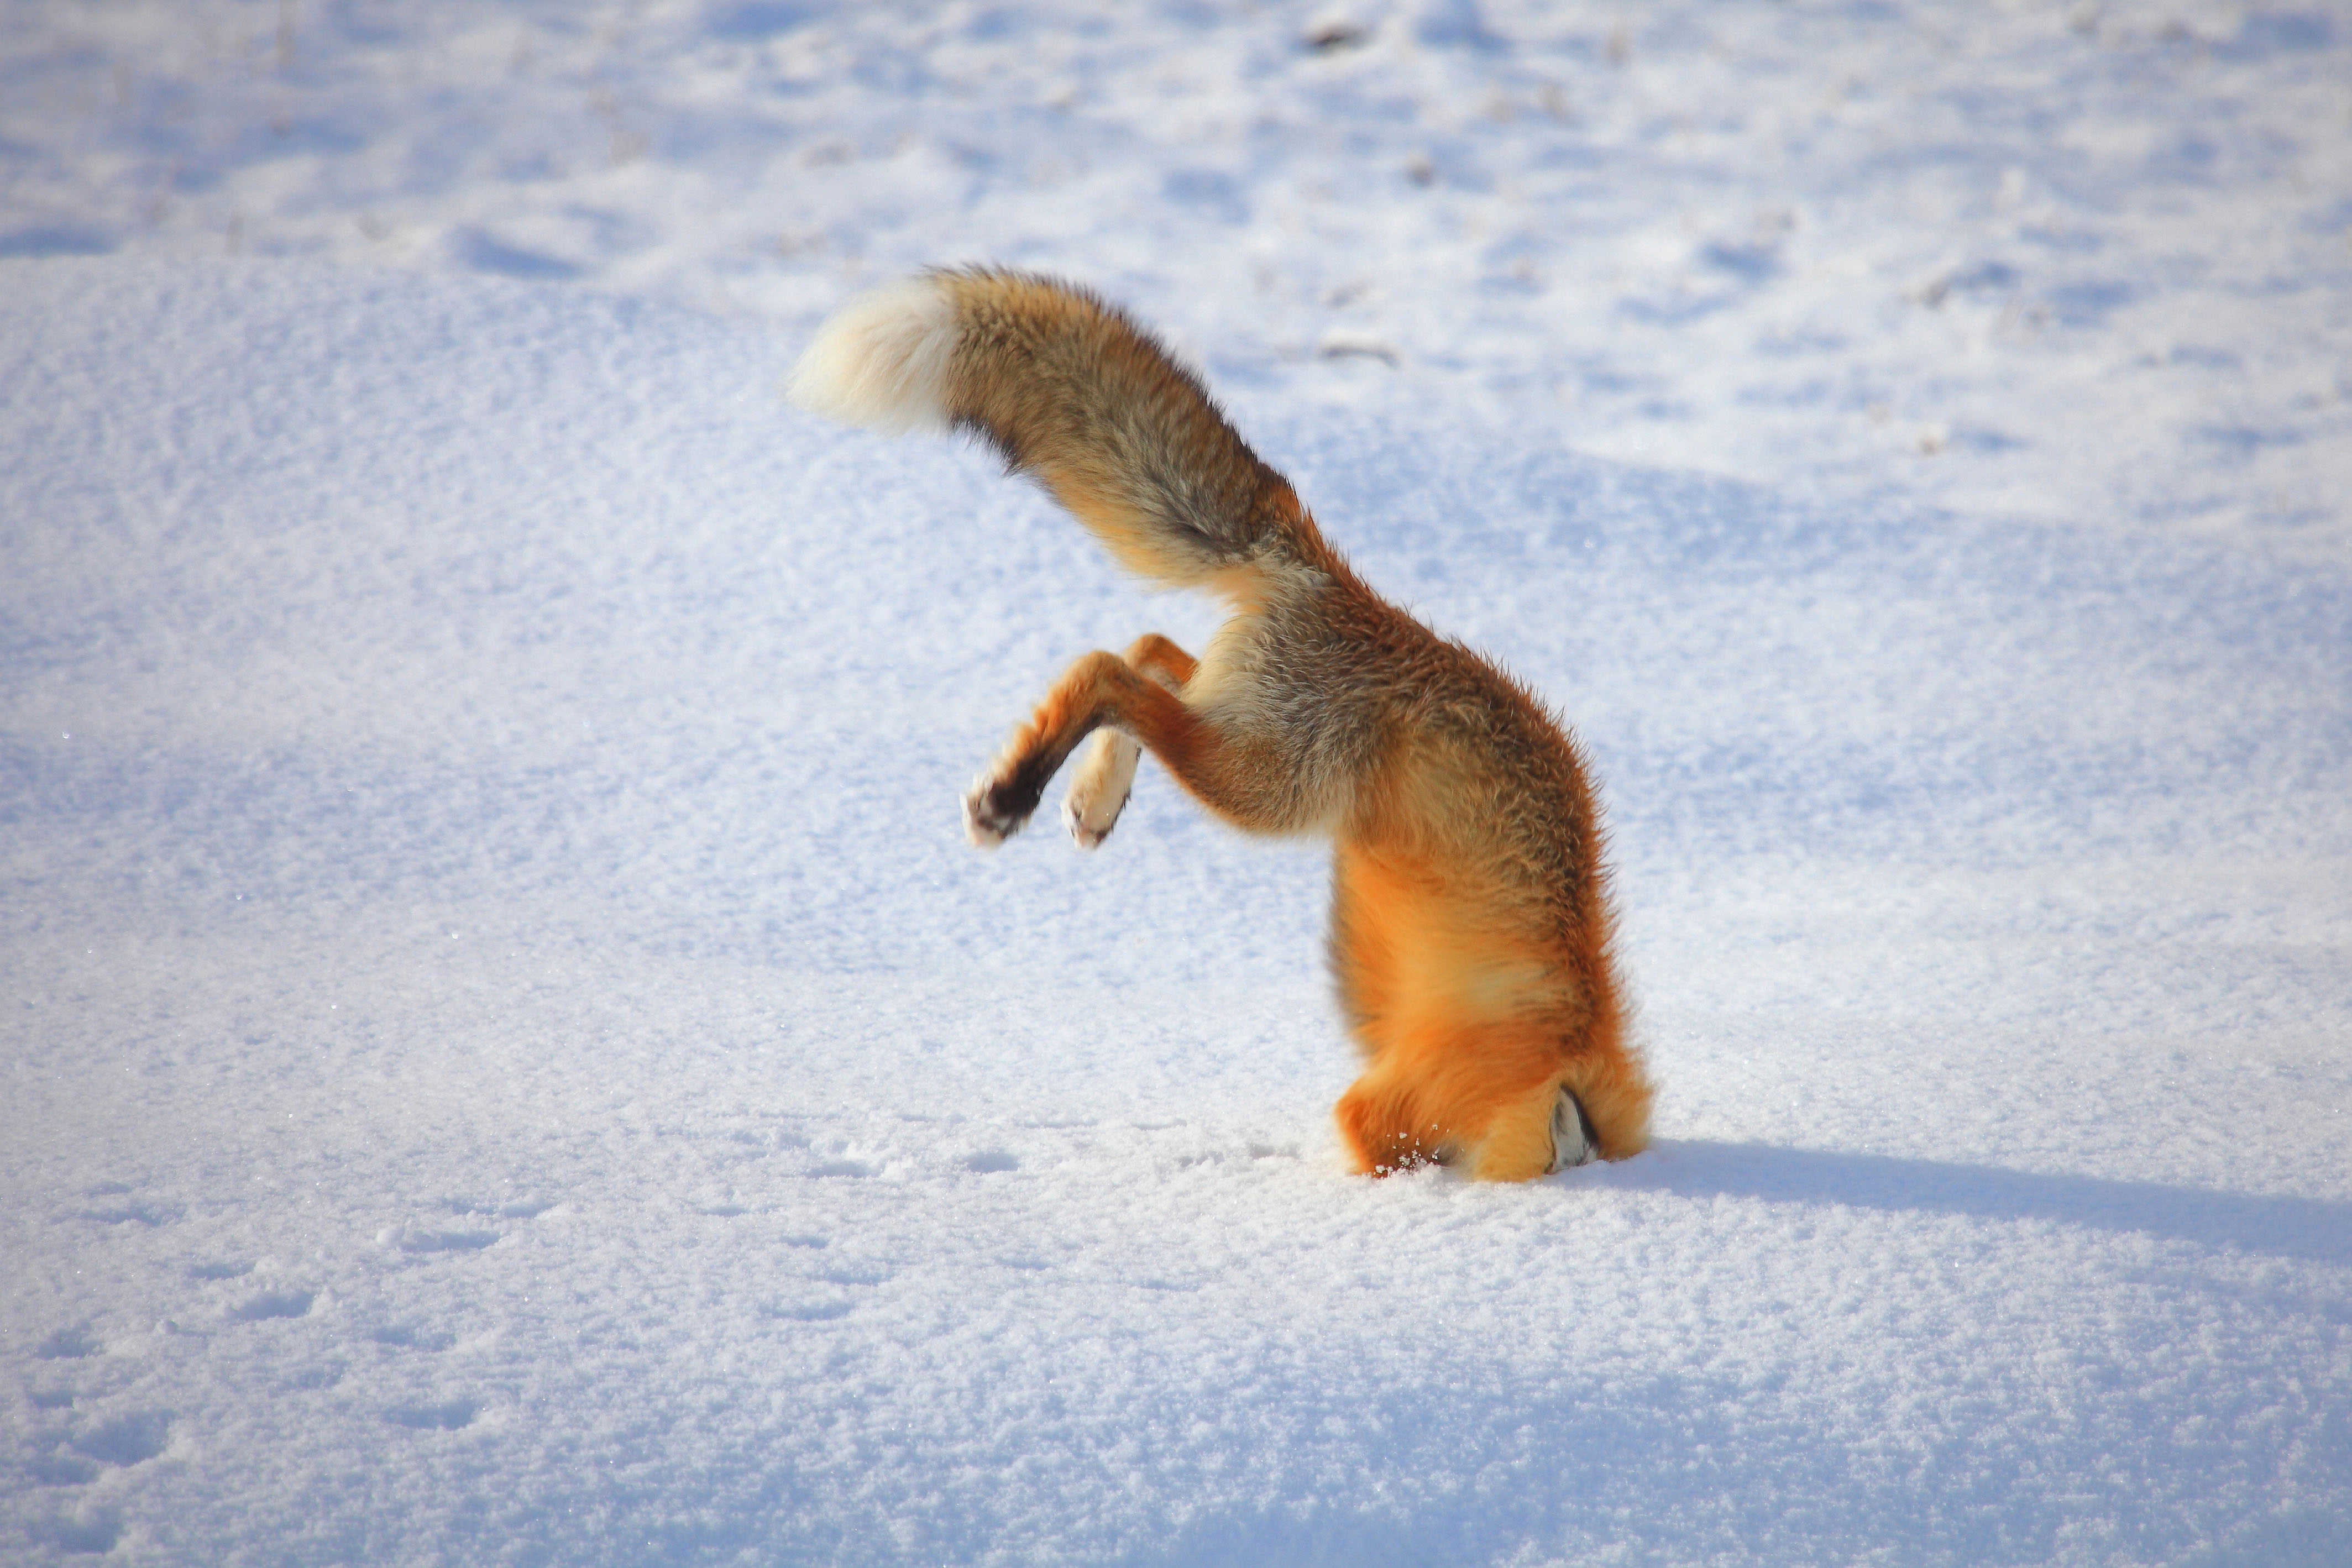 Outfoxed Fox Gets Wedged In Snow After Narrowly Missing